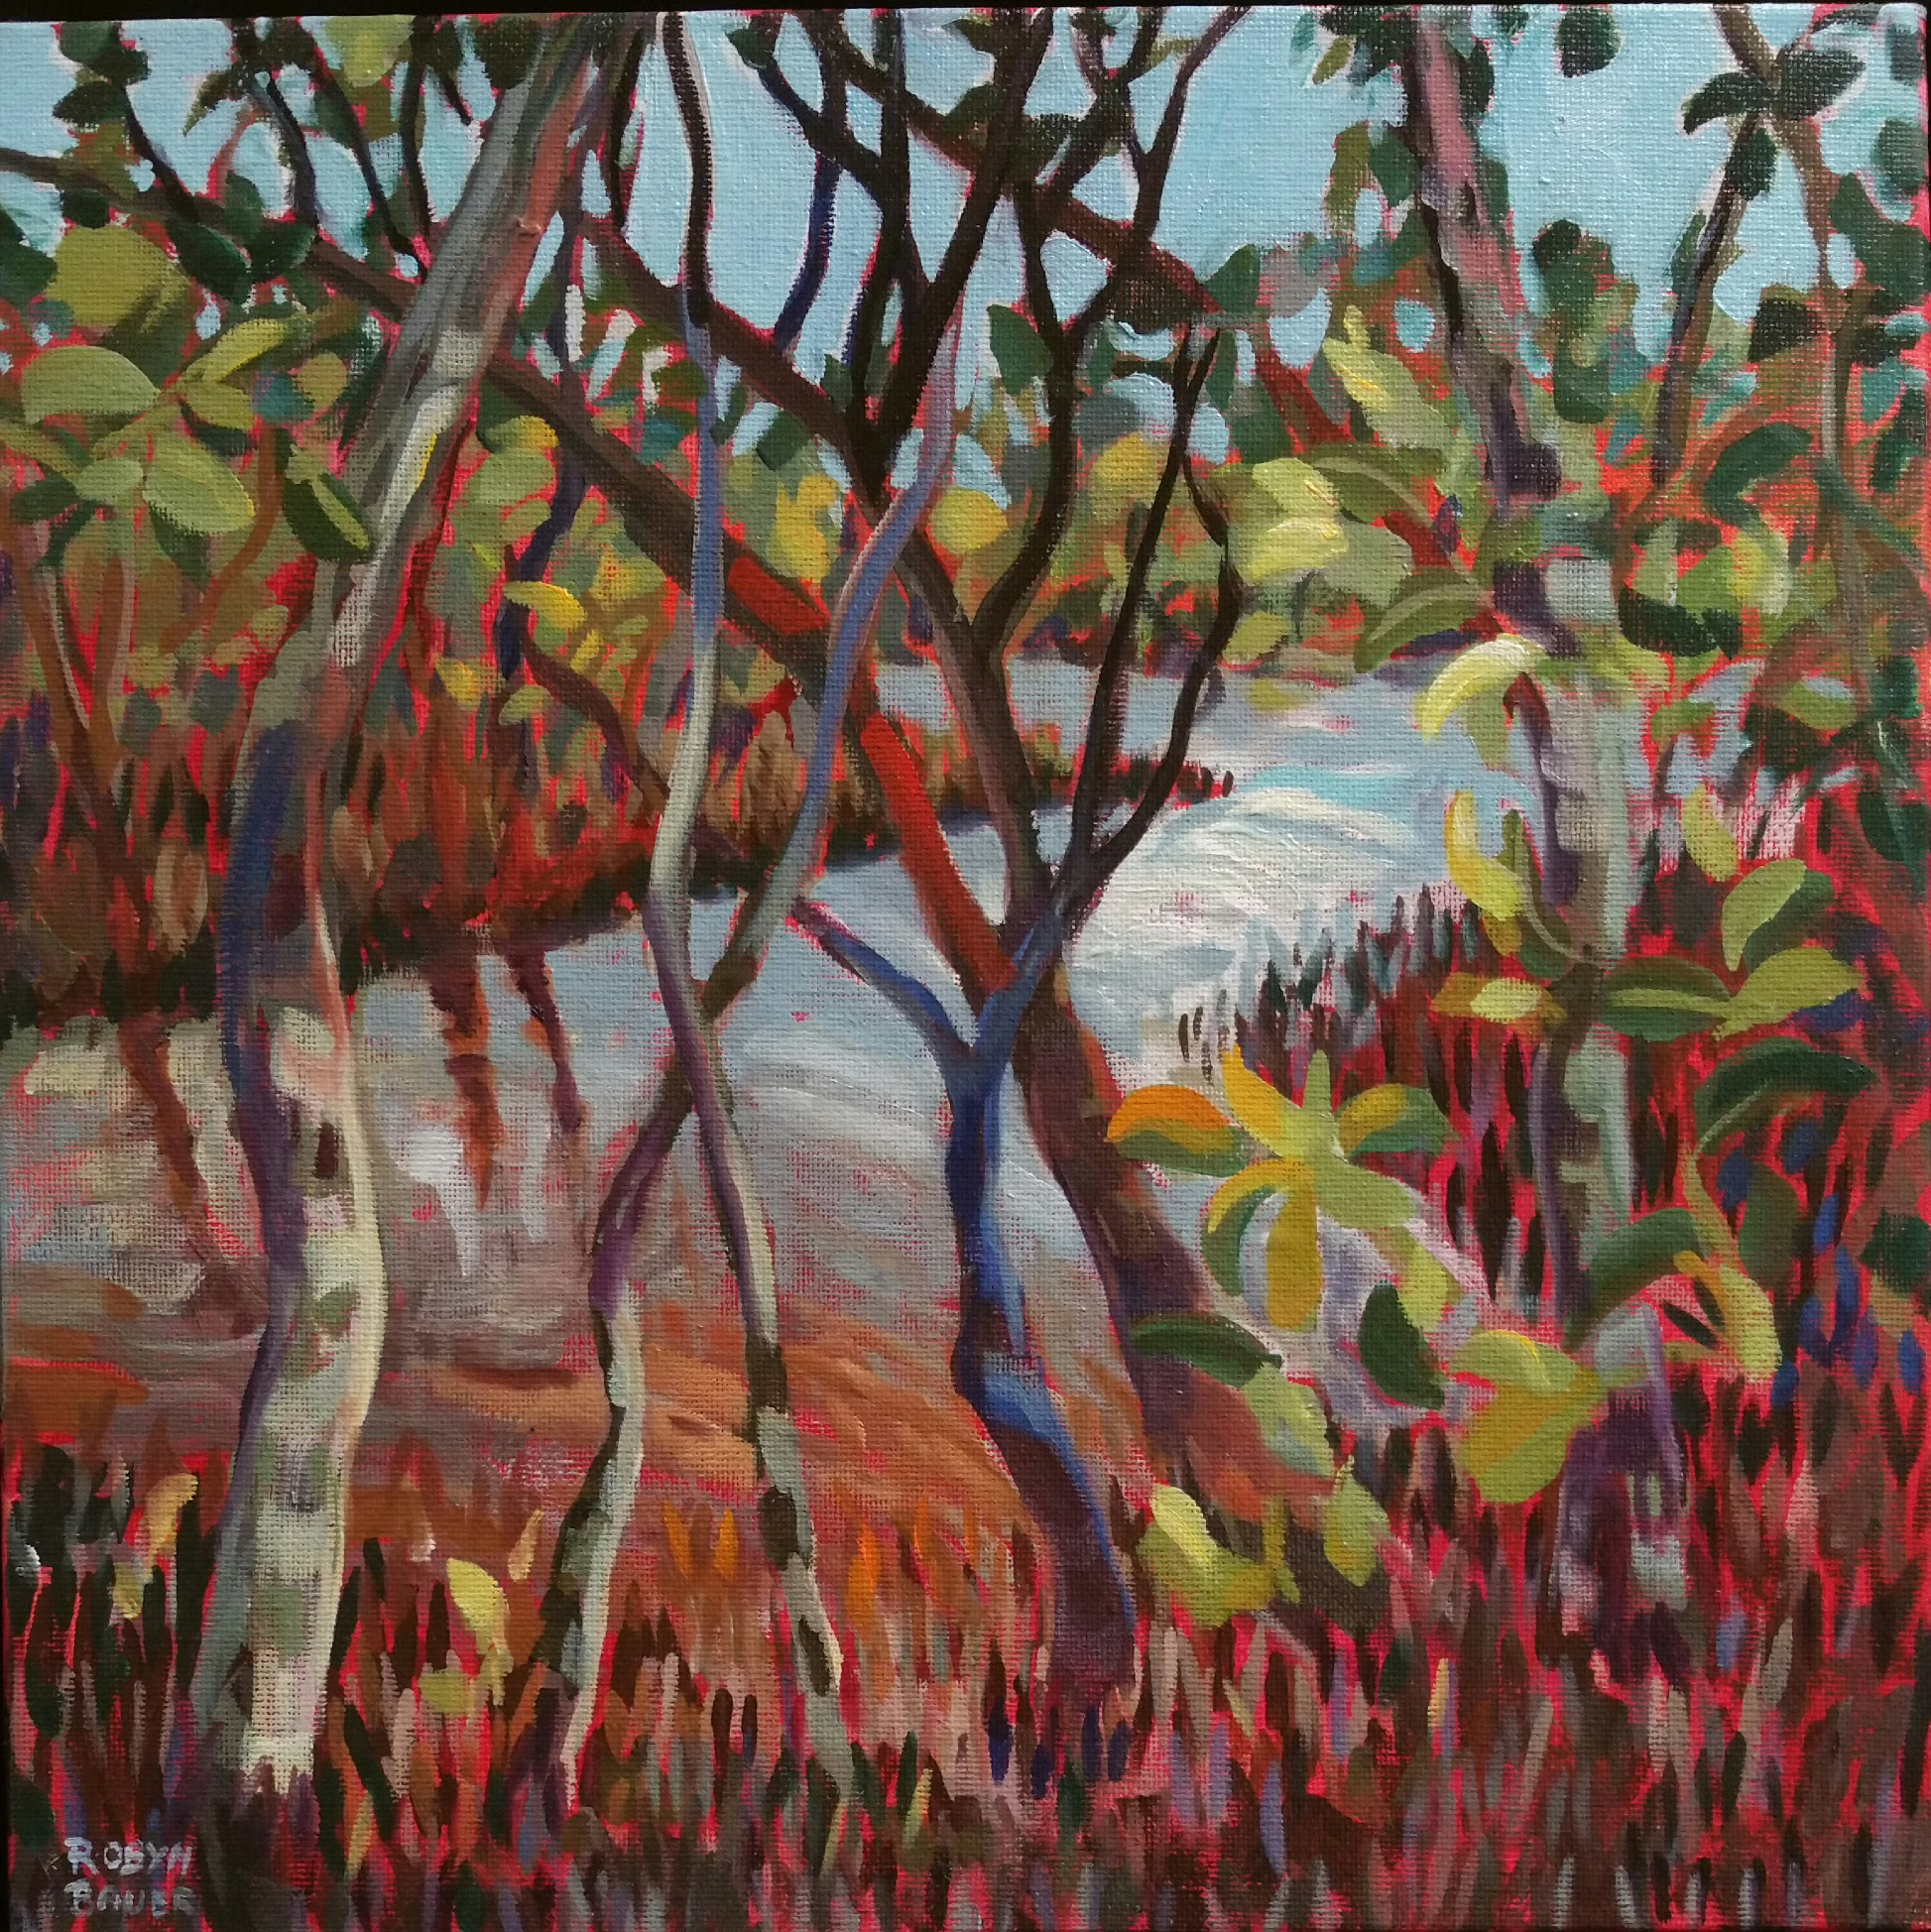 Water dance, mangroves at Toorbul